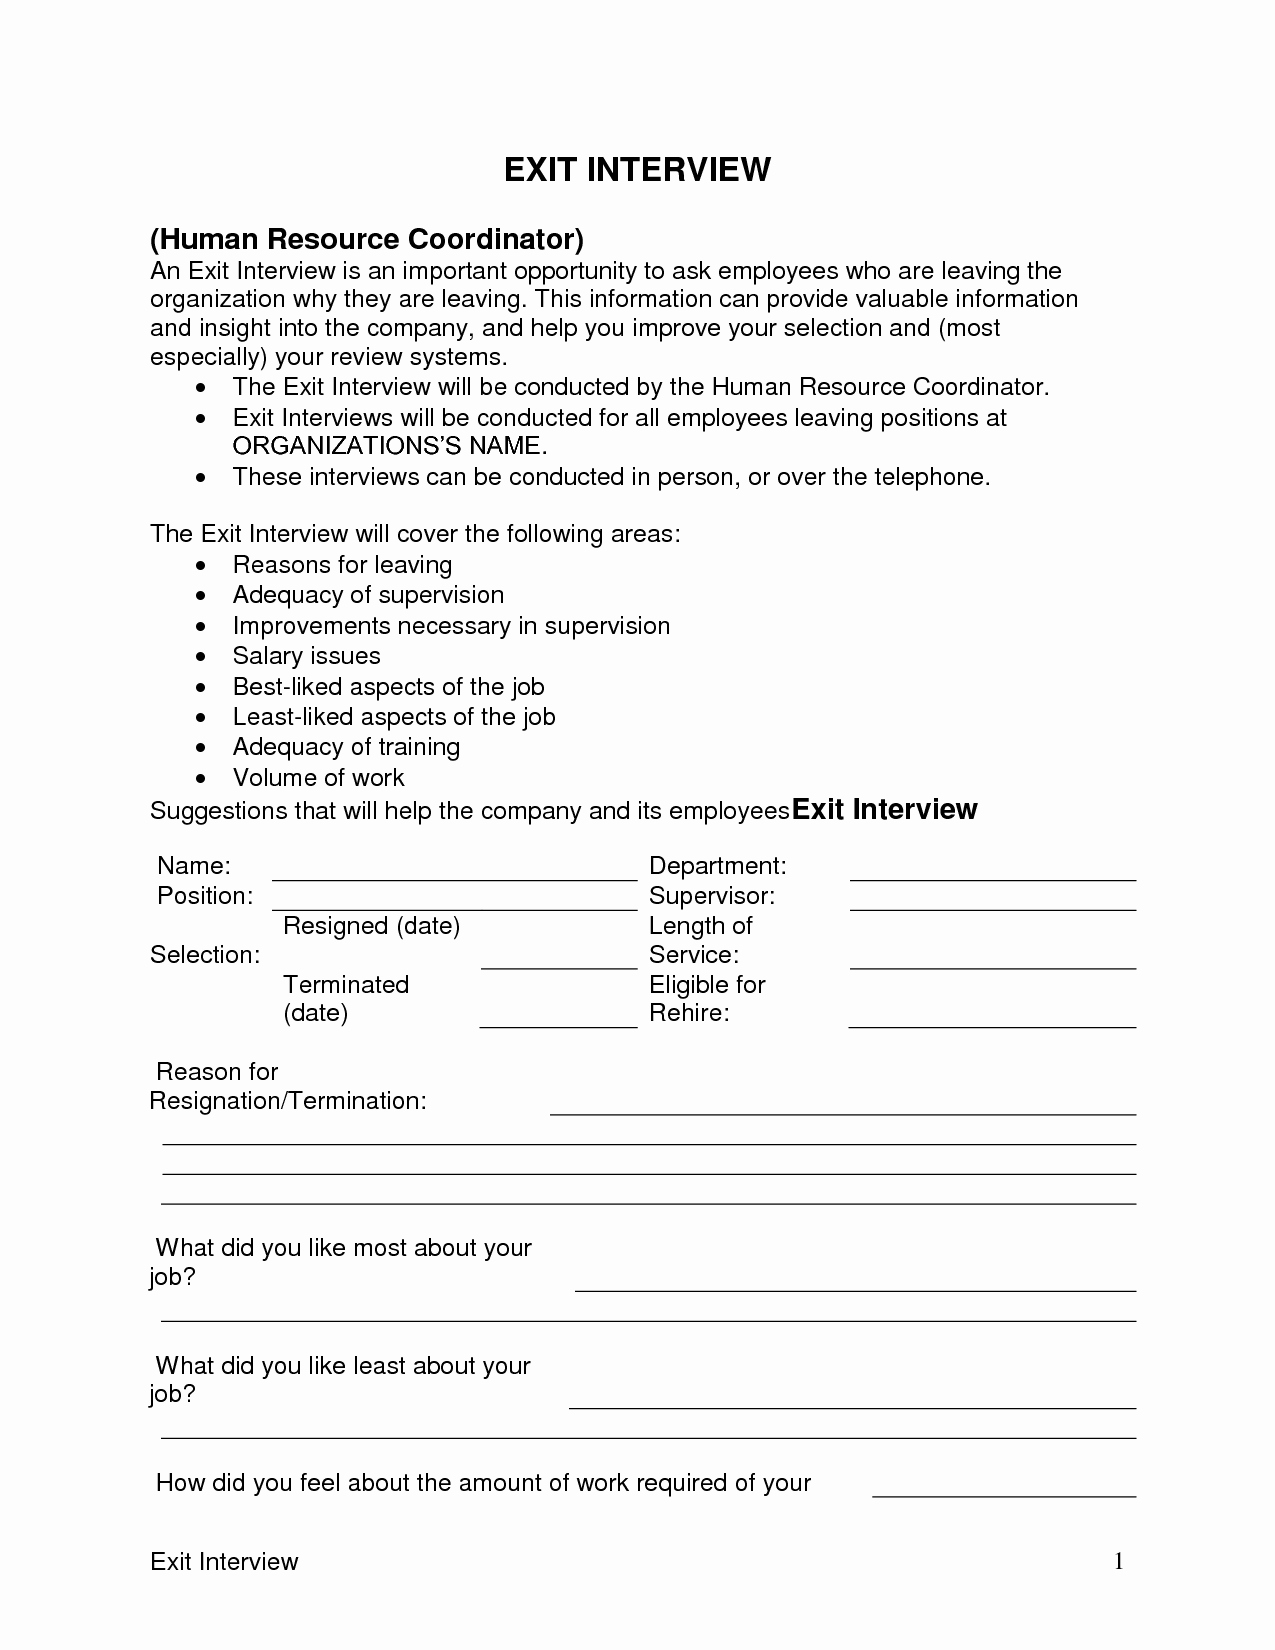 Sample Exit Interview forms Best Of Exit Interview Template